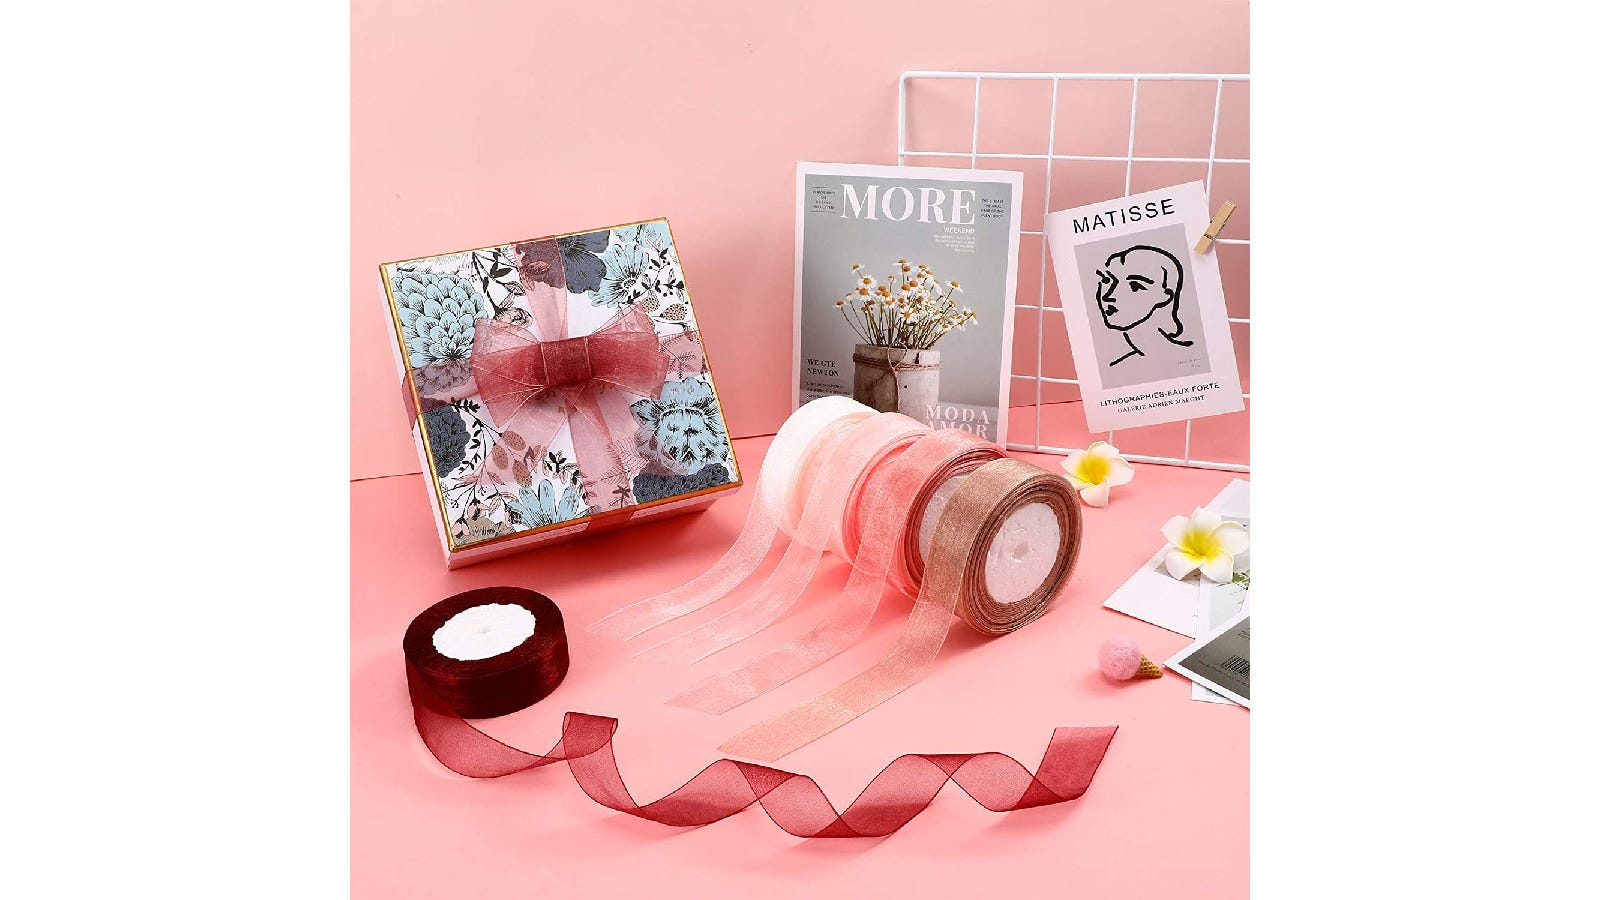 five dusty pink ribbons surrounded by magazine covers on a pink background